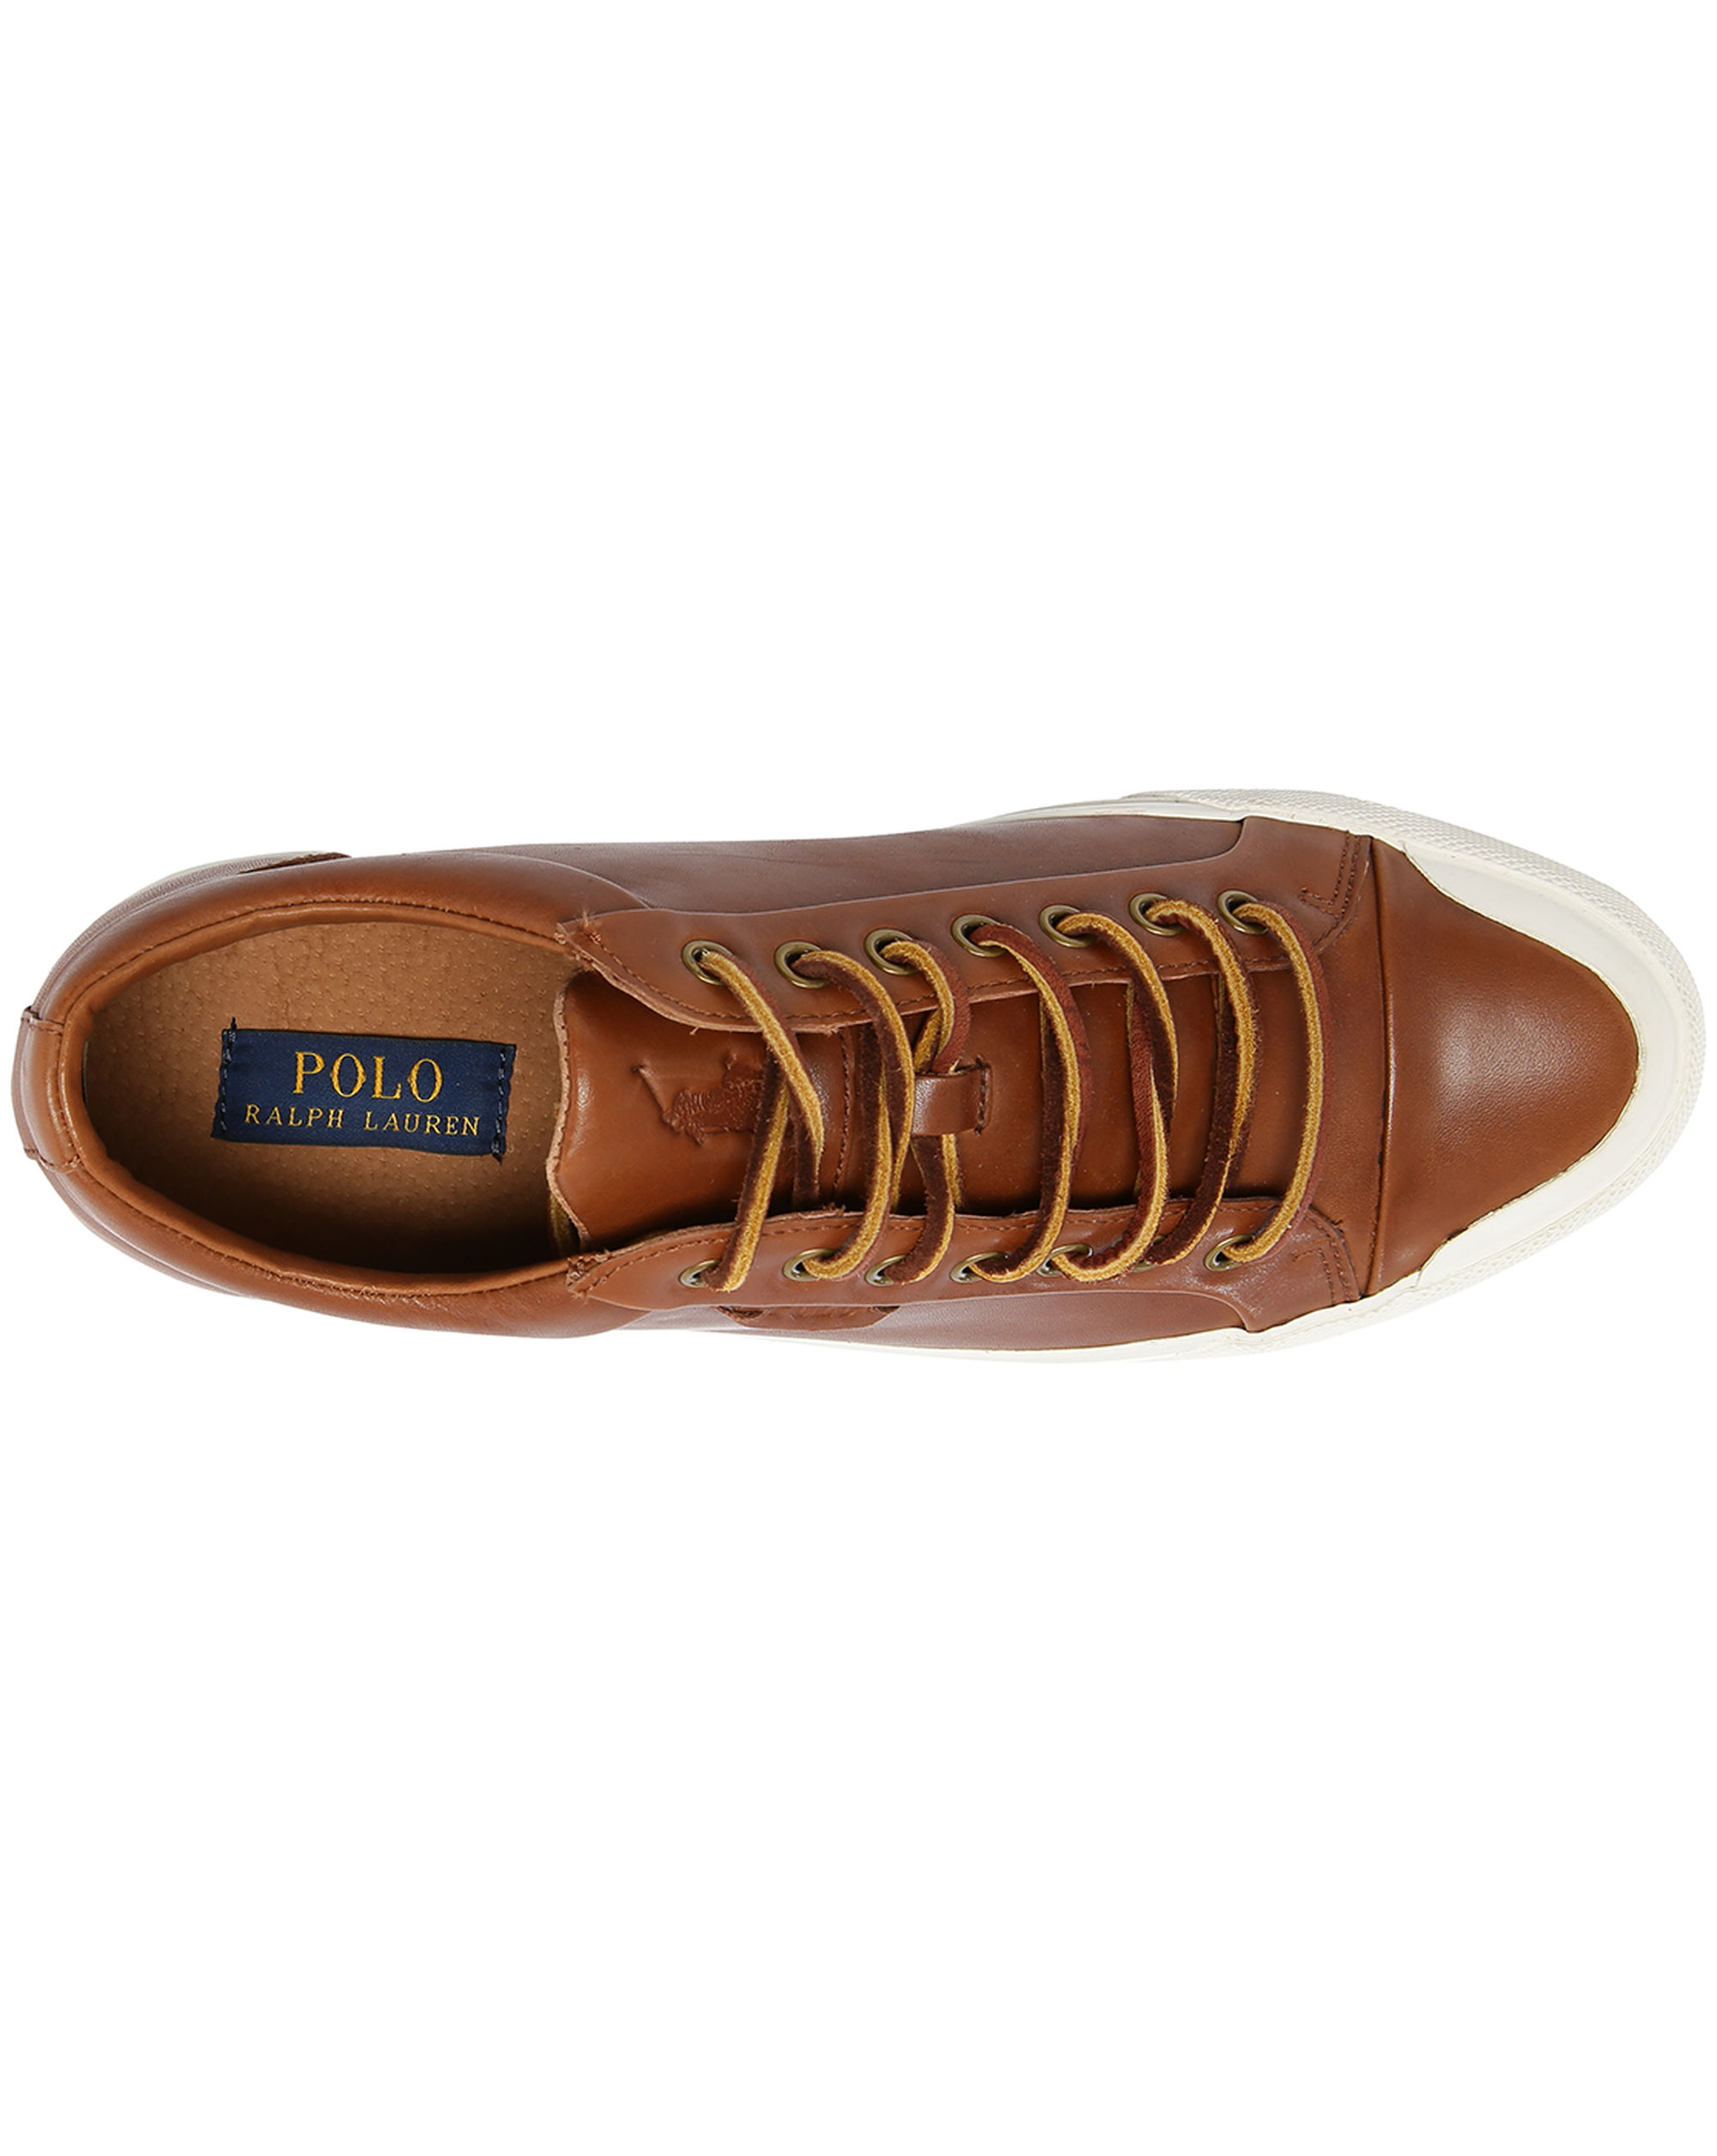 Polo ralph lauren Geffrey Brown Leather Sneakers in Brown for Men | Lyst